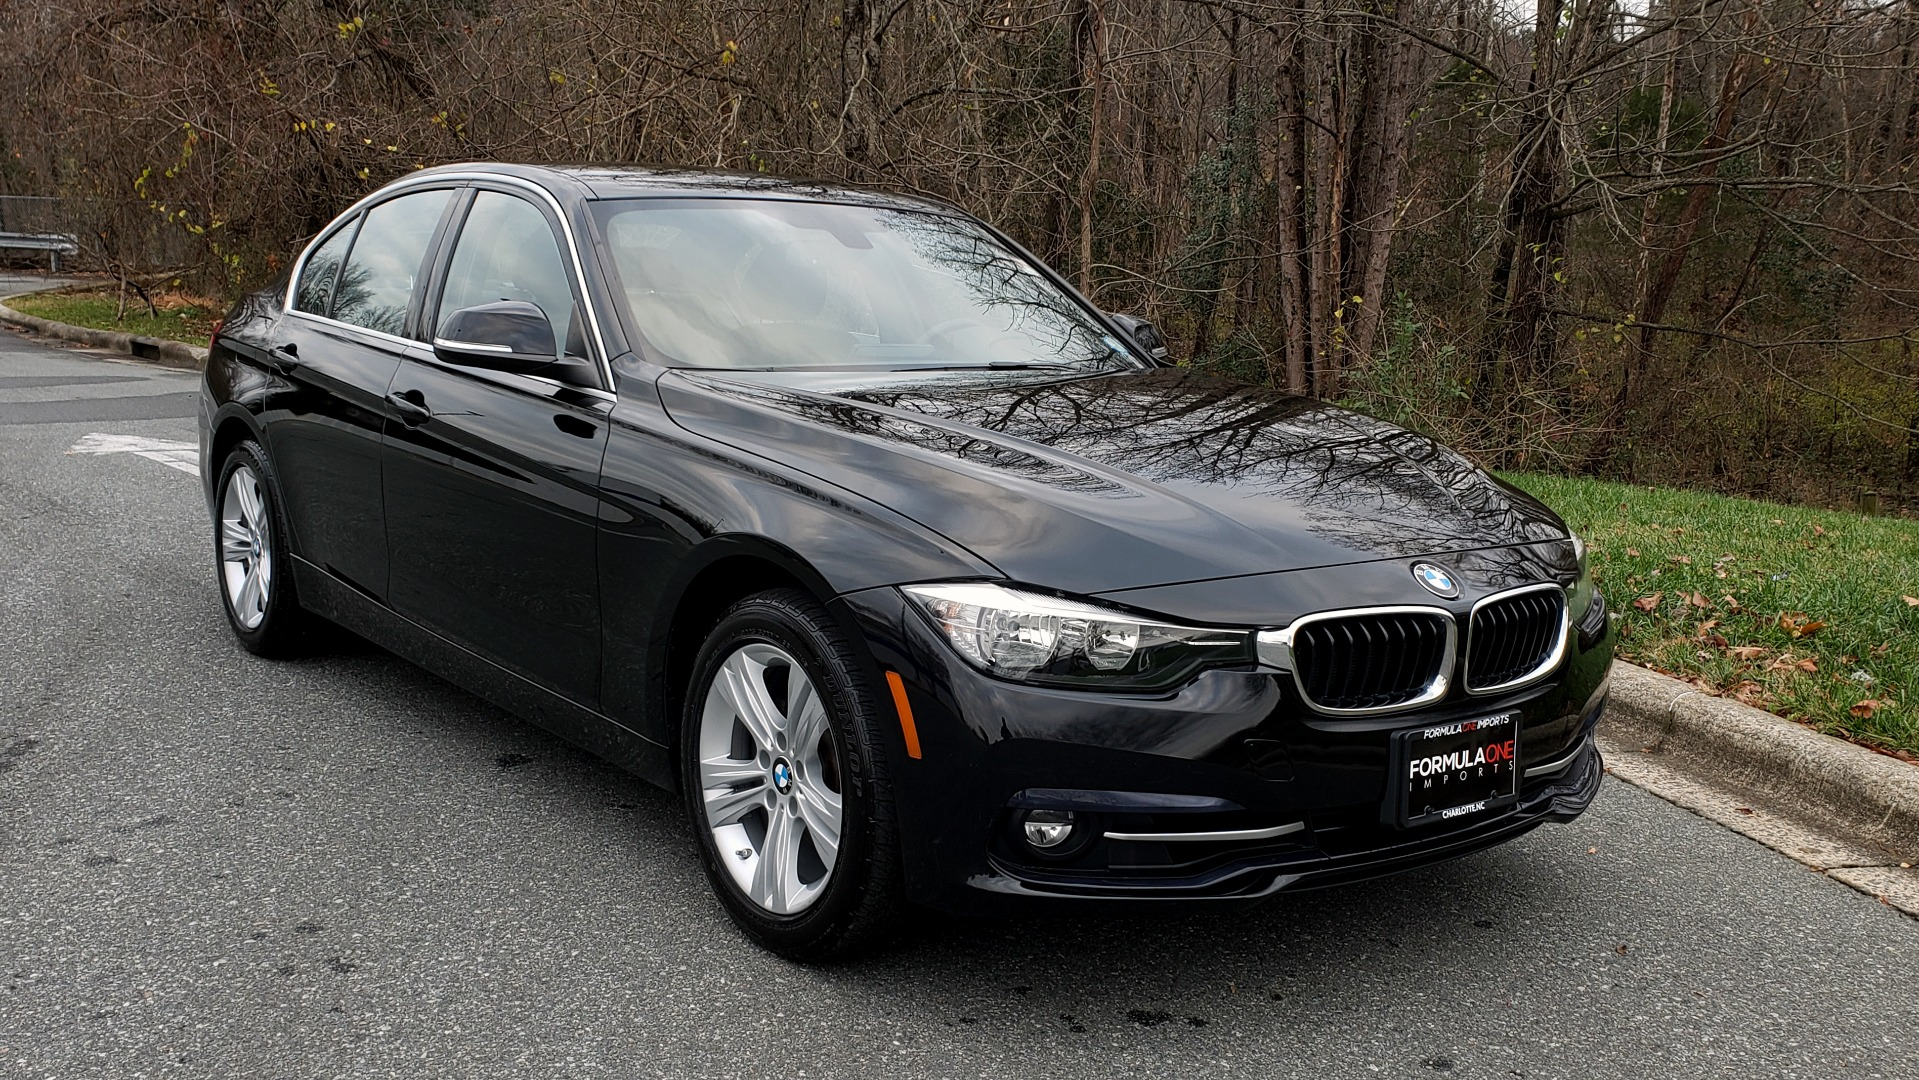 Used 2017 BMW 3 SERIES 330I XDRIVE / AWD / HEATED SEATS / LOW MILES for sale $23,495 at Formula Imports in Charlotte NC 28227 4